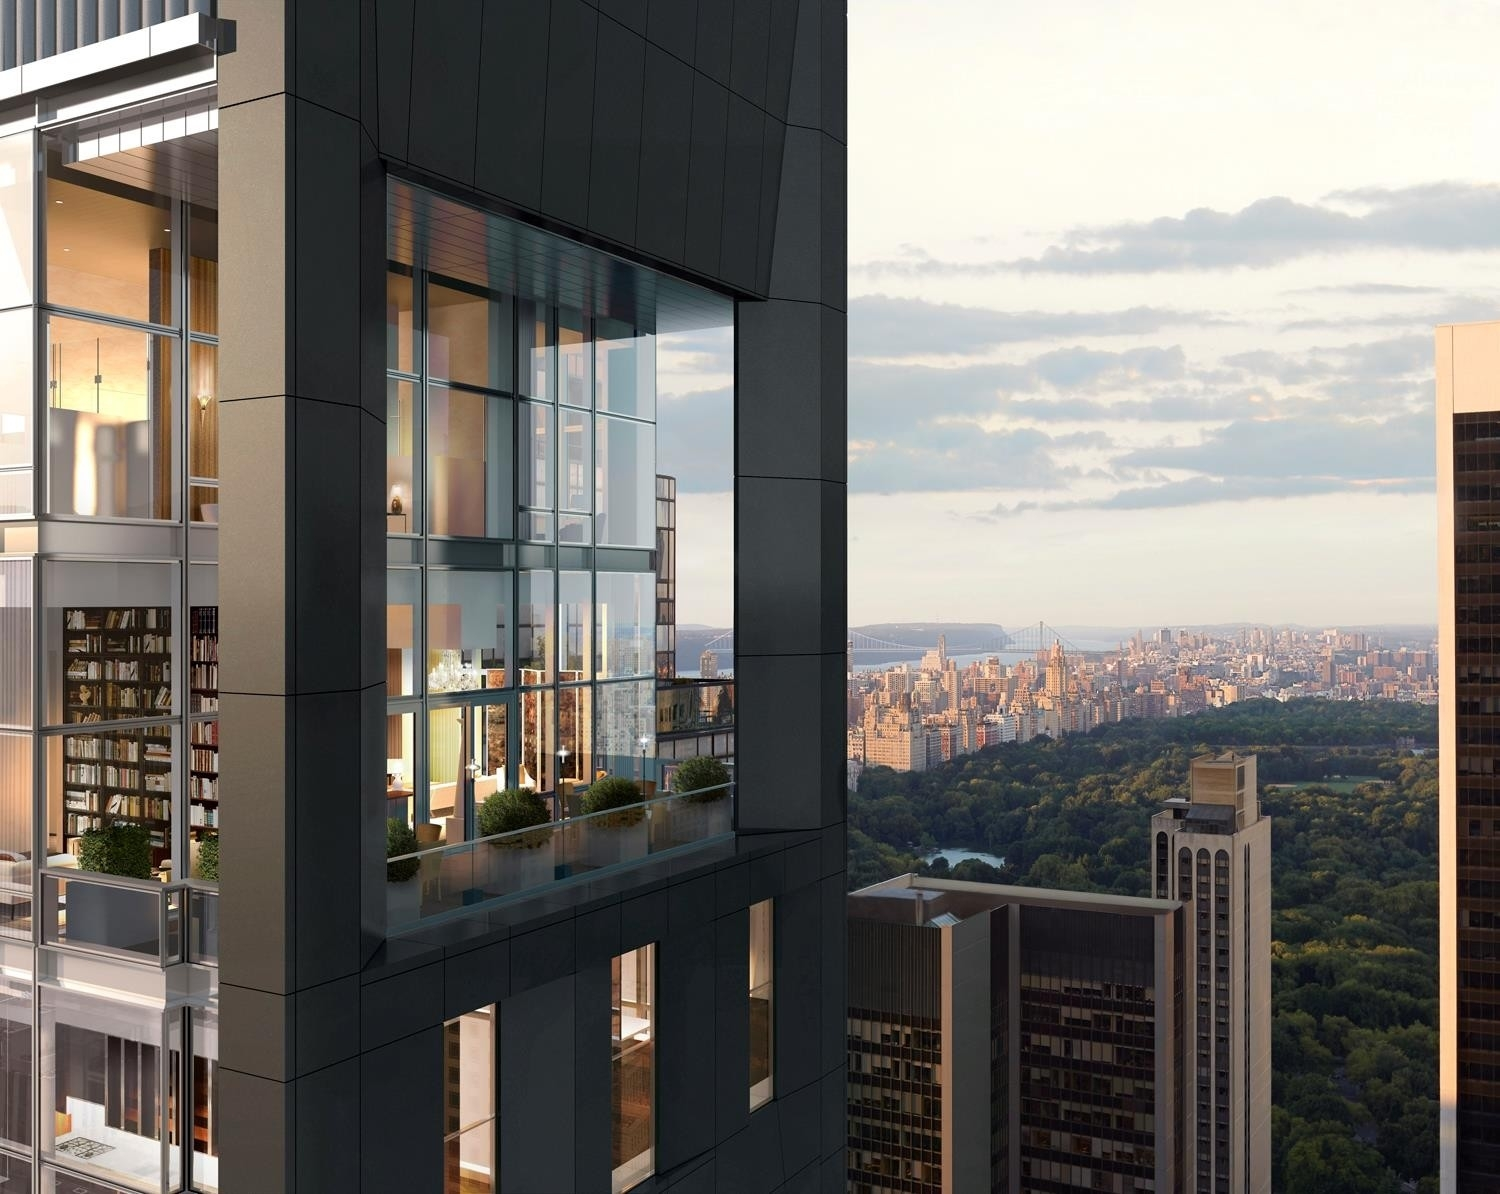 12. Condominiums for Sale at BACCARAT HOTEL & RESIDENCES, 20 West 53rd St, PH48/49 Midtown West, New York, NY 10019